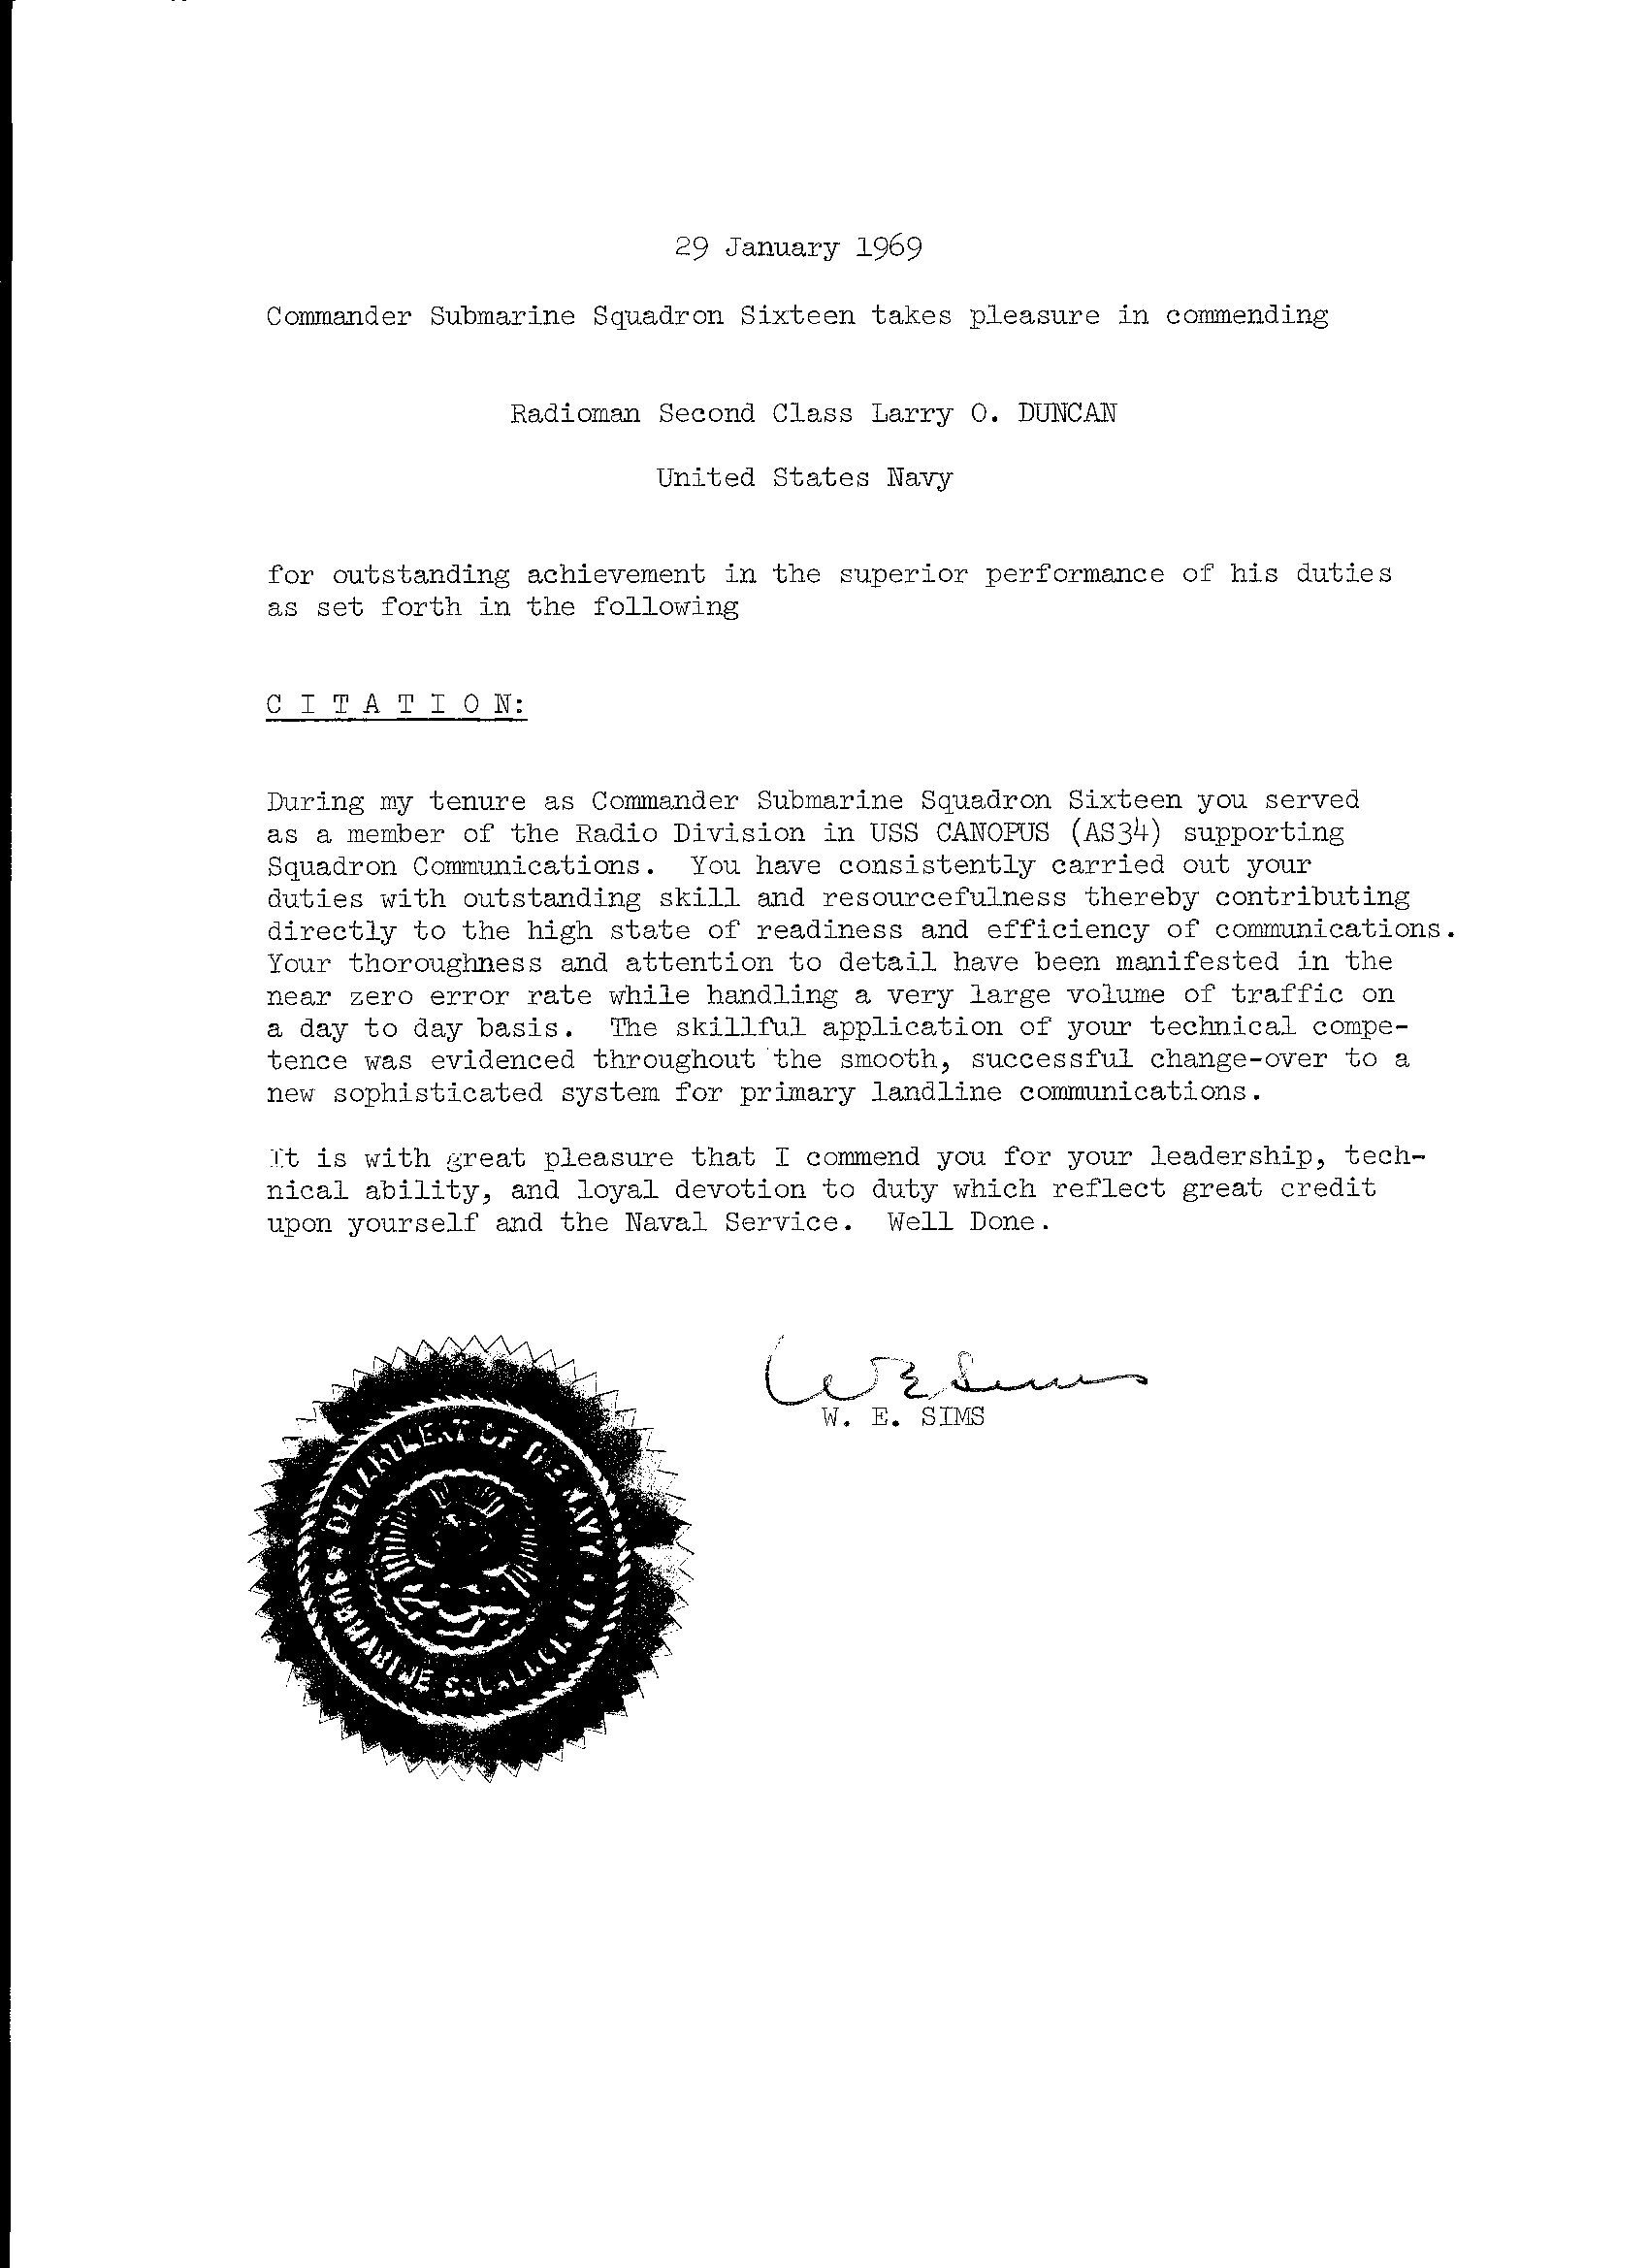 Commendation Letter From Commander Of Submarine Squadron Sixteen